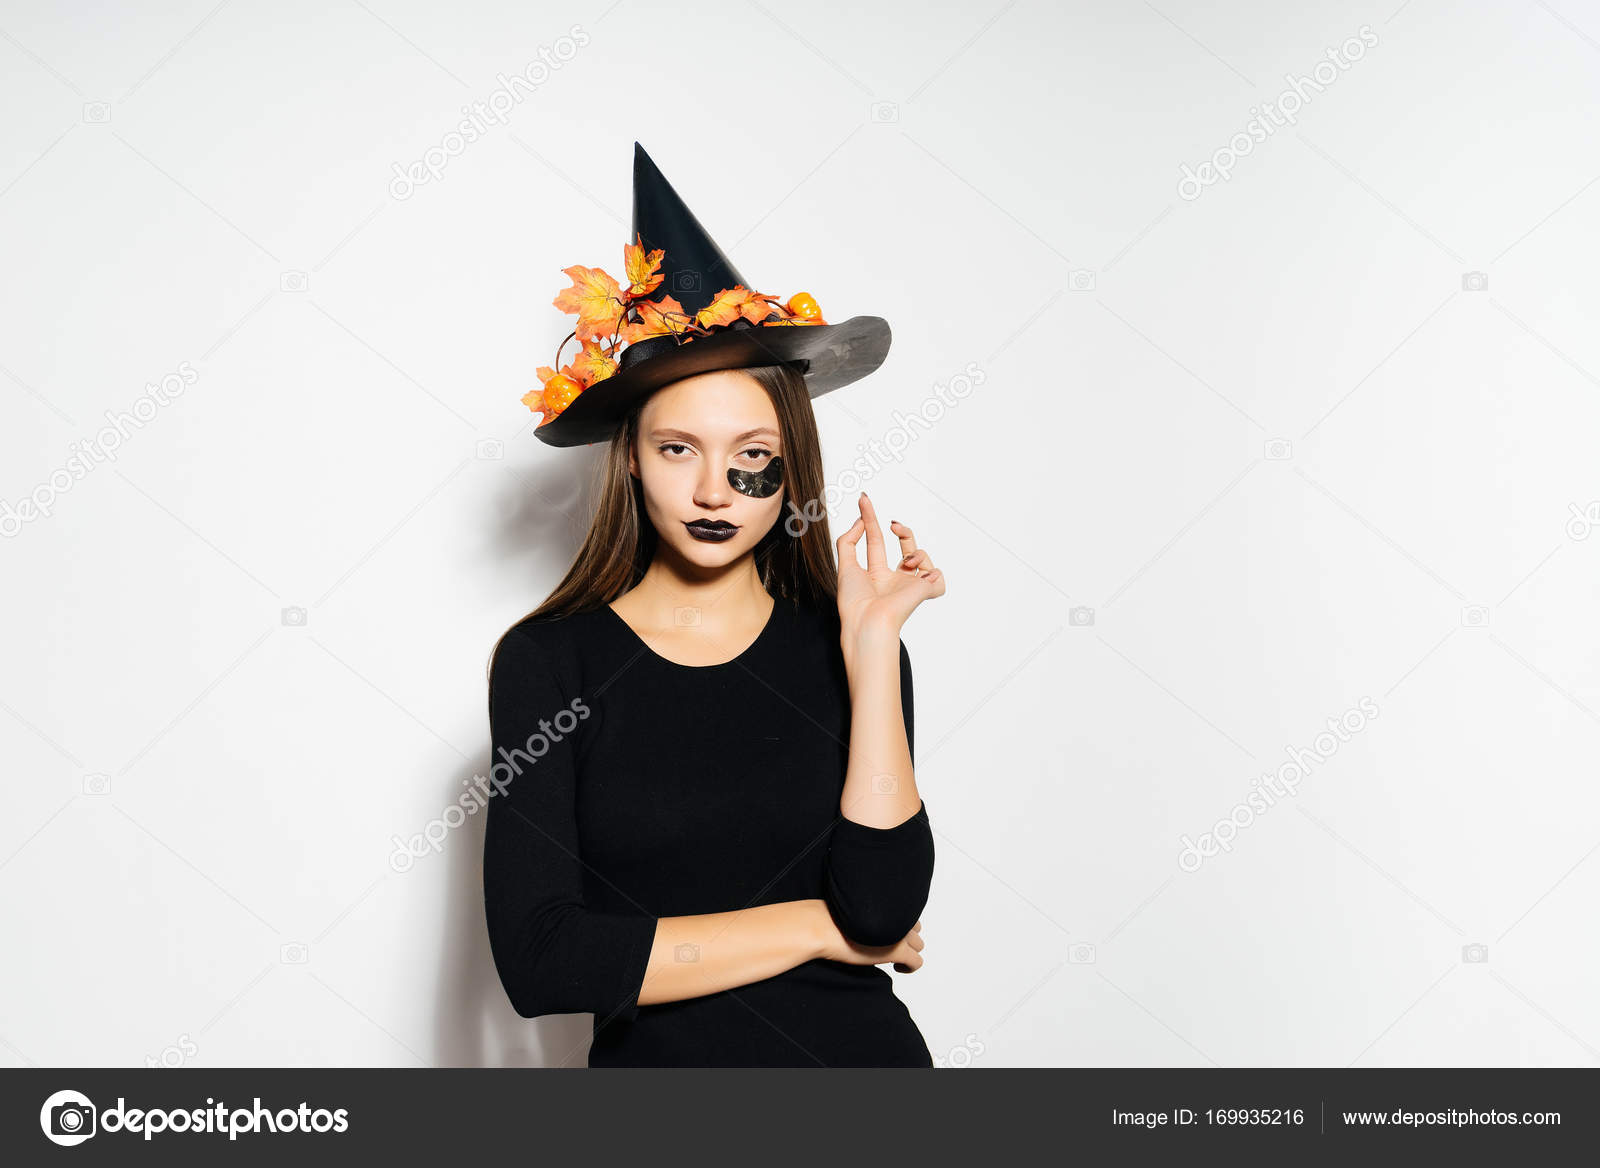 A beautiful girl in a Halloween costume and a black witch hat looks cool with black lipstick u2014 Photo by mne_len  sc 1 st  Depositphotos & A beautiful girl in a Halloween costume and a black witch hat looks ...